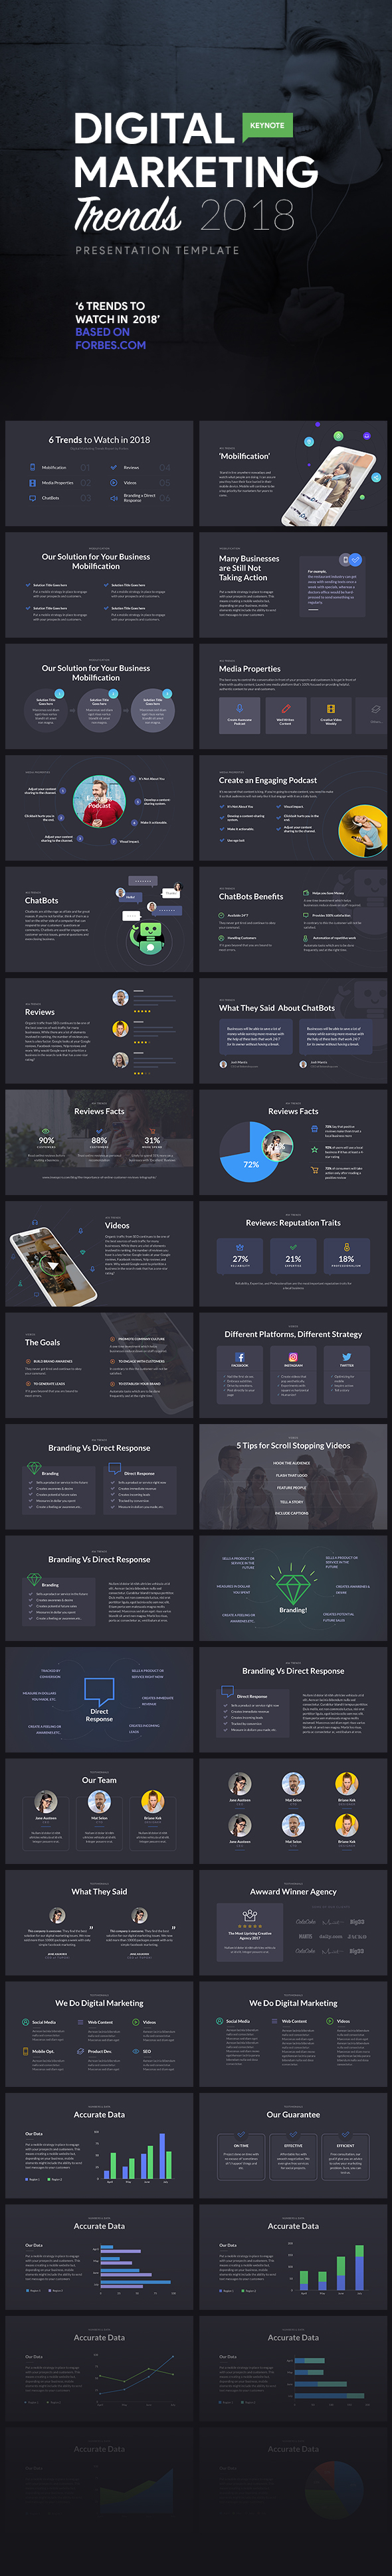 Digital Marketing Trends 2018 - Keynote Presentation Template - Keynote Templates Presentation Templates